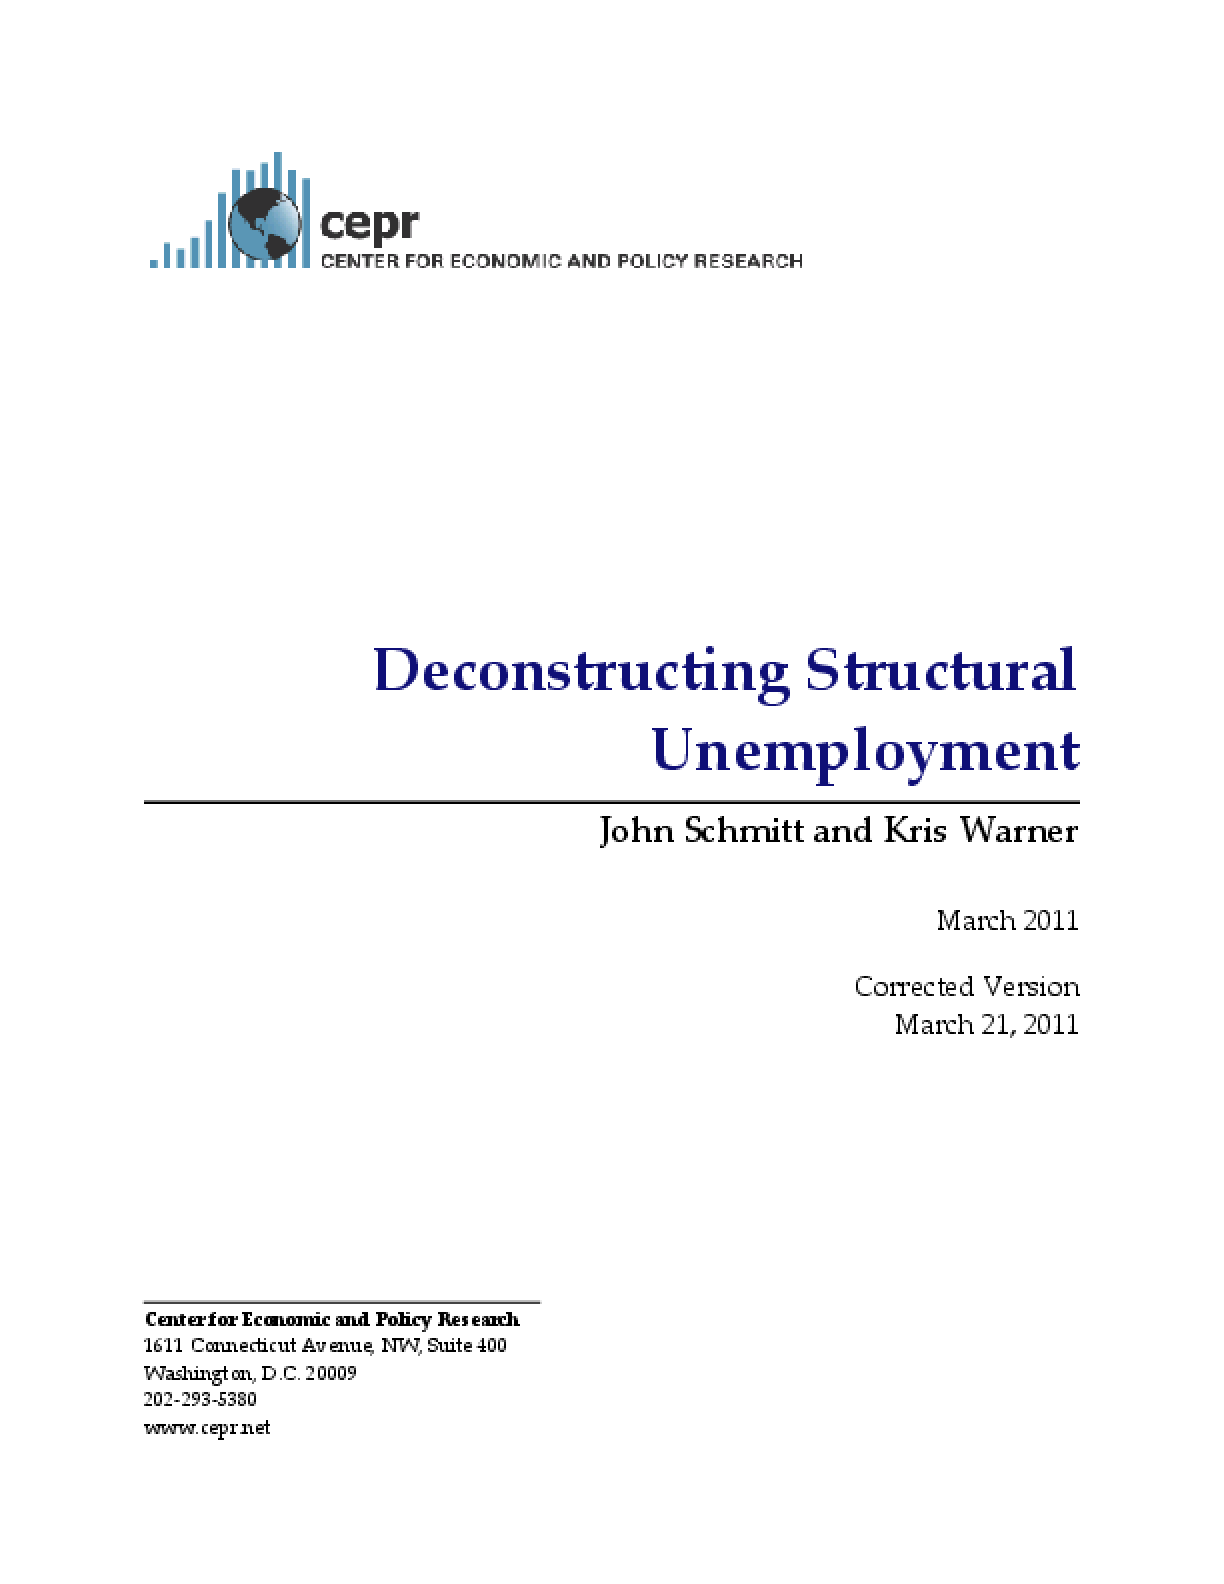 Deconstructing Structural Unemployment